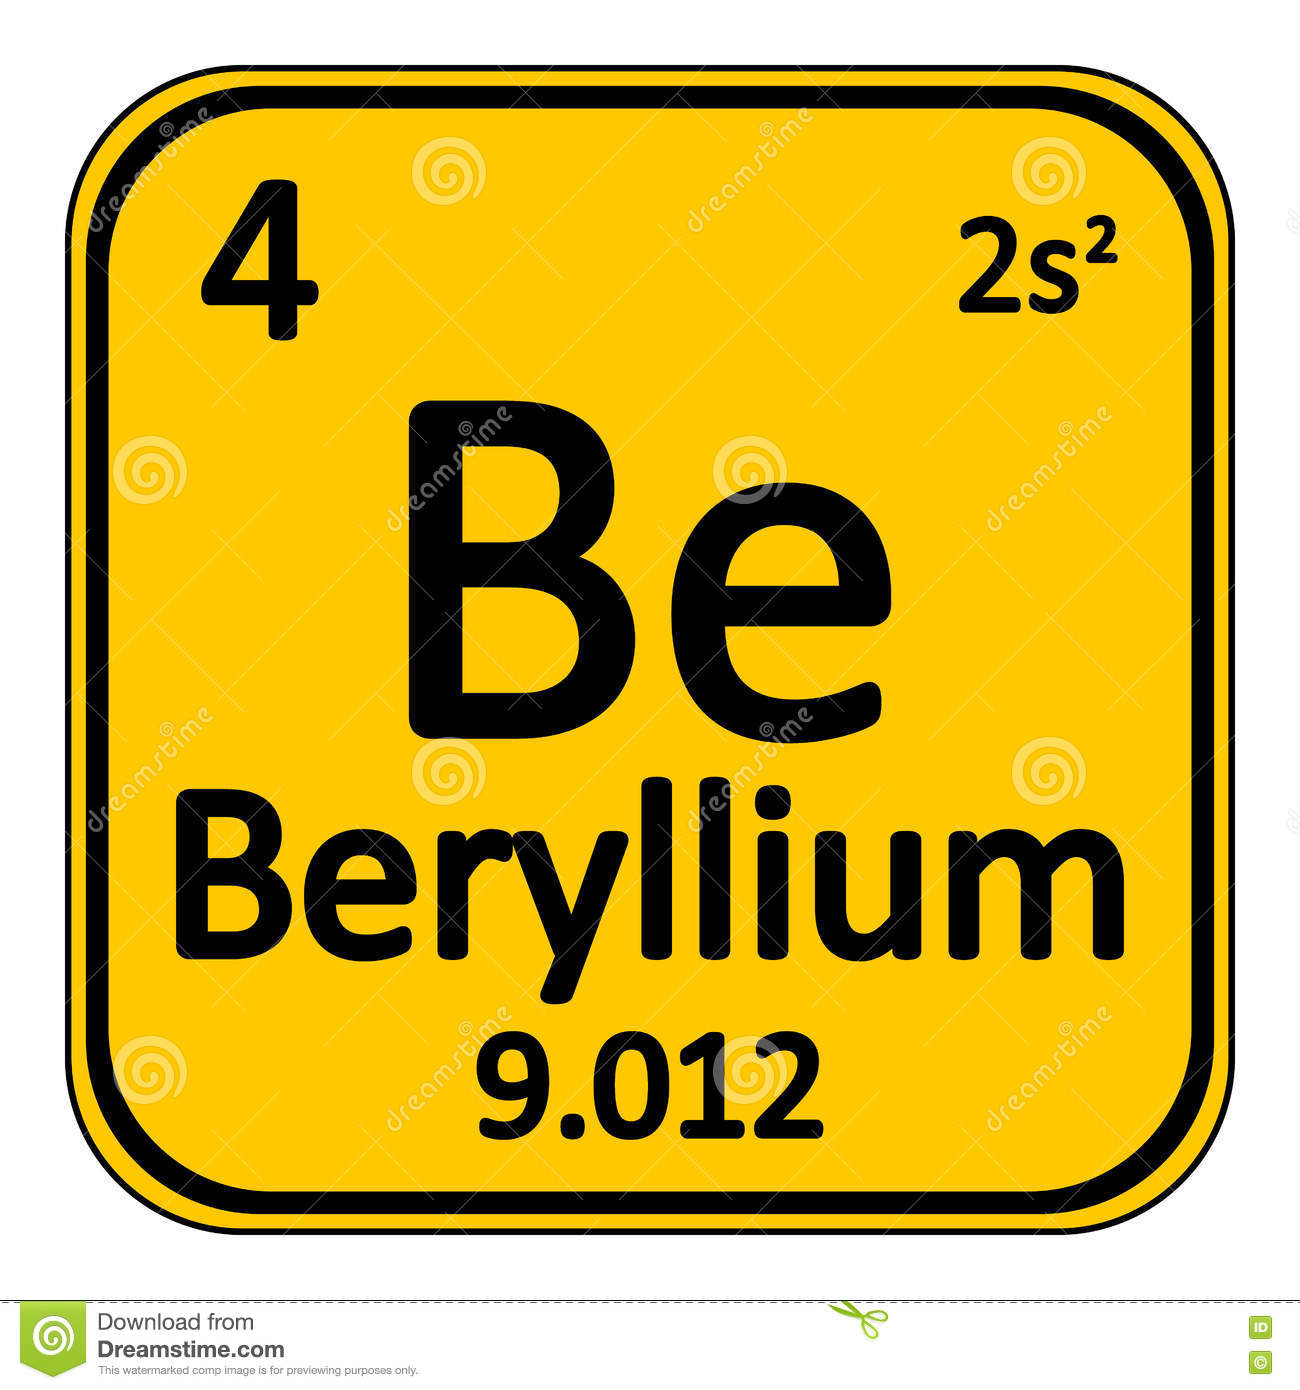 Periodic table element beryllium icon stock illustration periodic table element beryllium icon buycottarizona Image collections